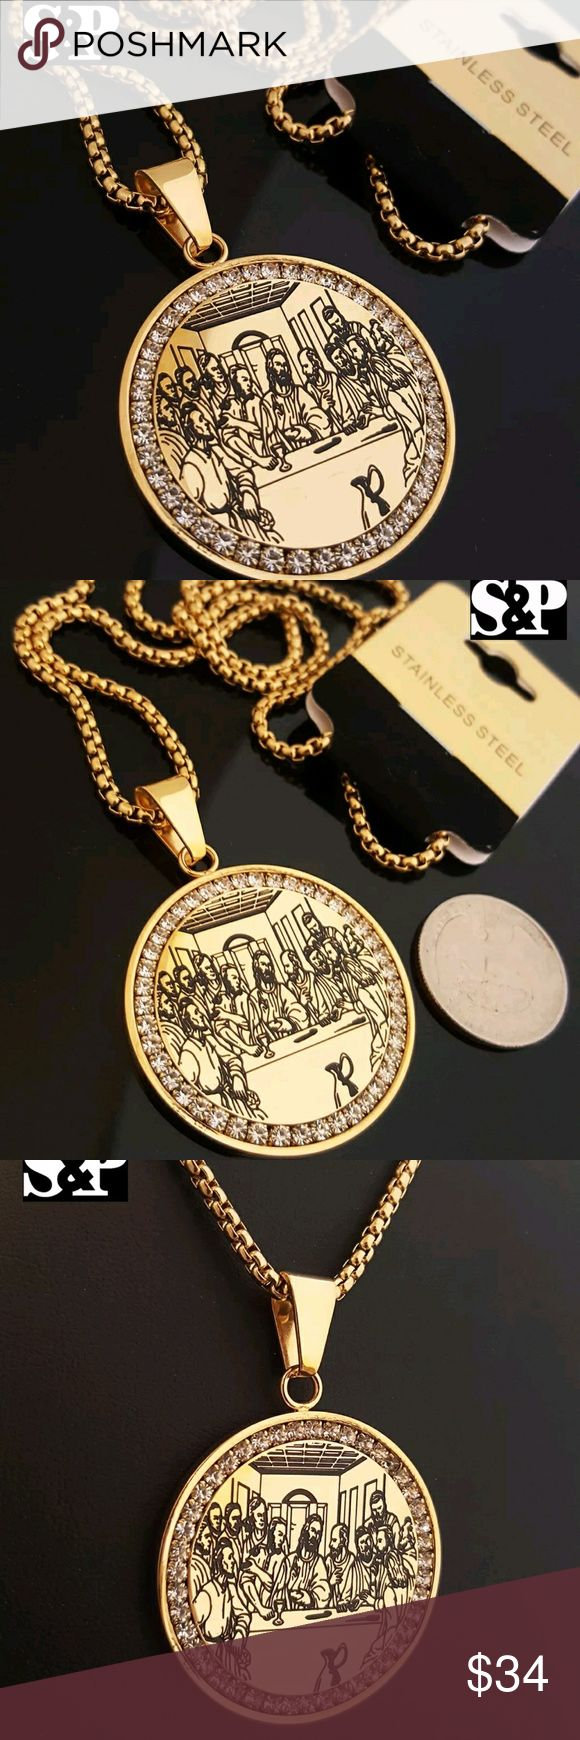 """Gold Stainless Steel Jesus Last Supper necklace Chain : Round Box Chain  Chain Length : 24""""  Chain Width : 3mm  COLOR: 14K Gold Tone Stainless Steel    PENDANT SIZE : 40mm (Diameter)  CZ Stones on Pendant   High Quality & Polished Accessories Jewelry"""